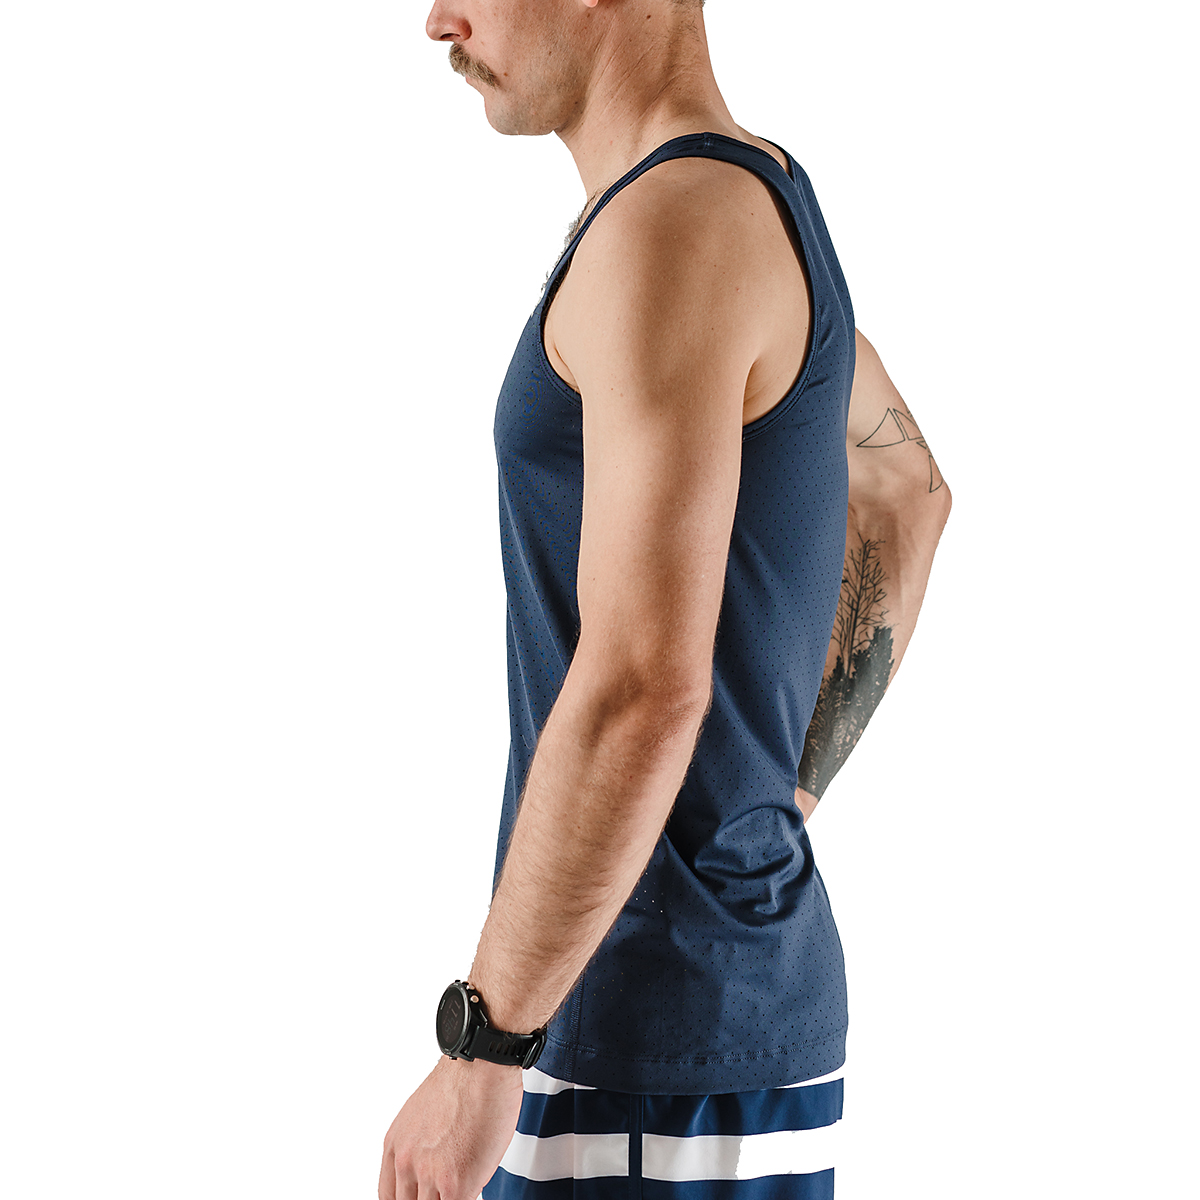 Men's Rabbit Welcome To The Gun Show Perf Tank, , large, image 3